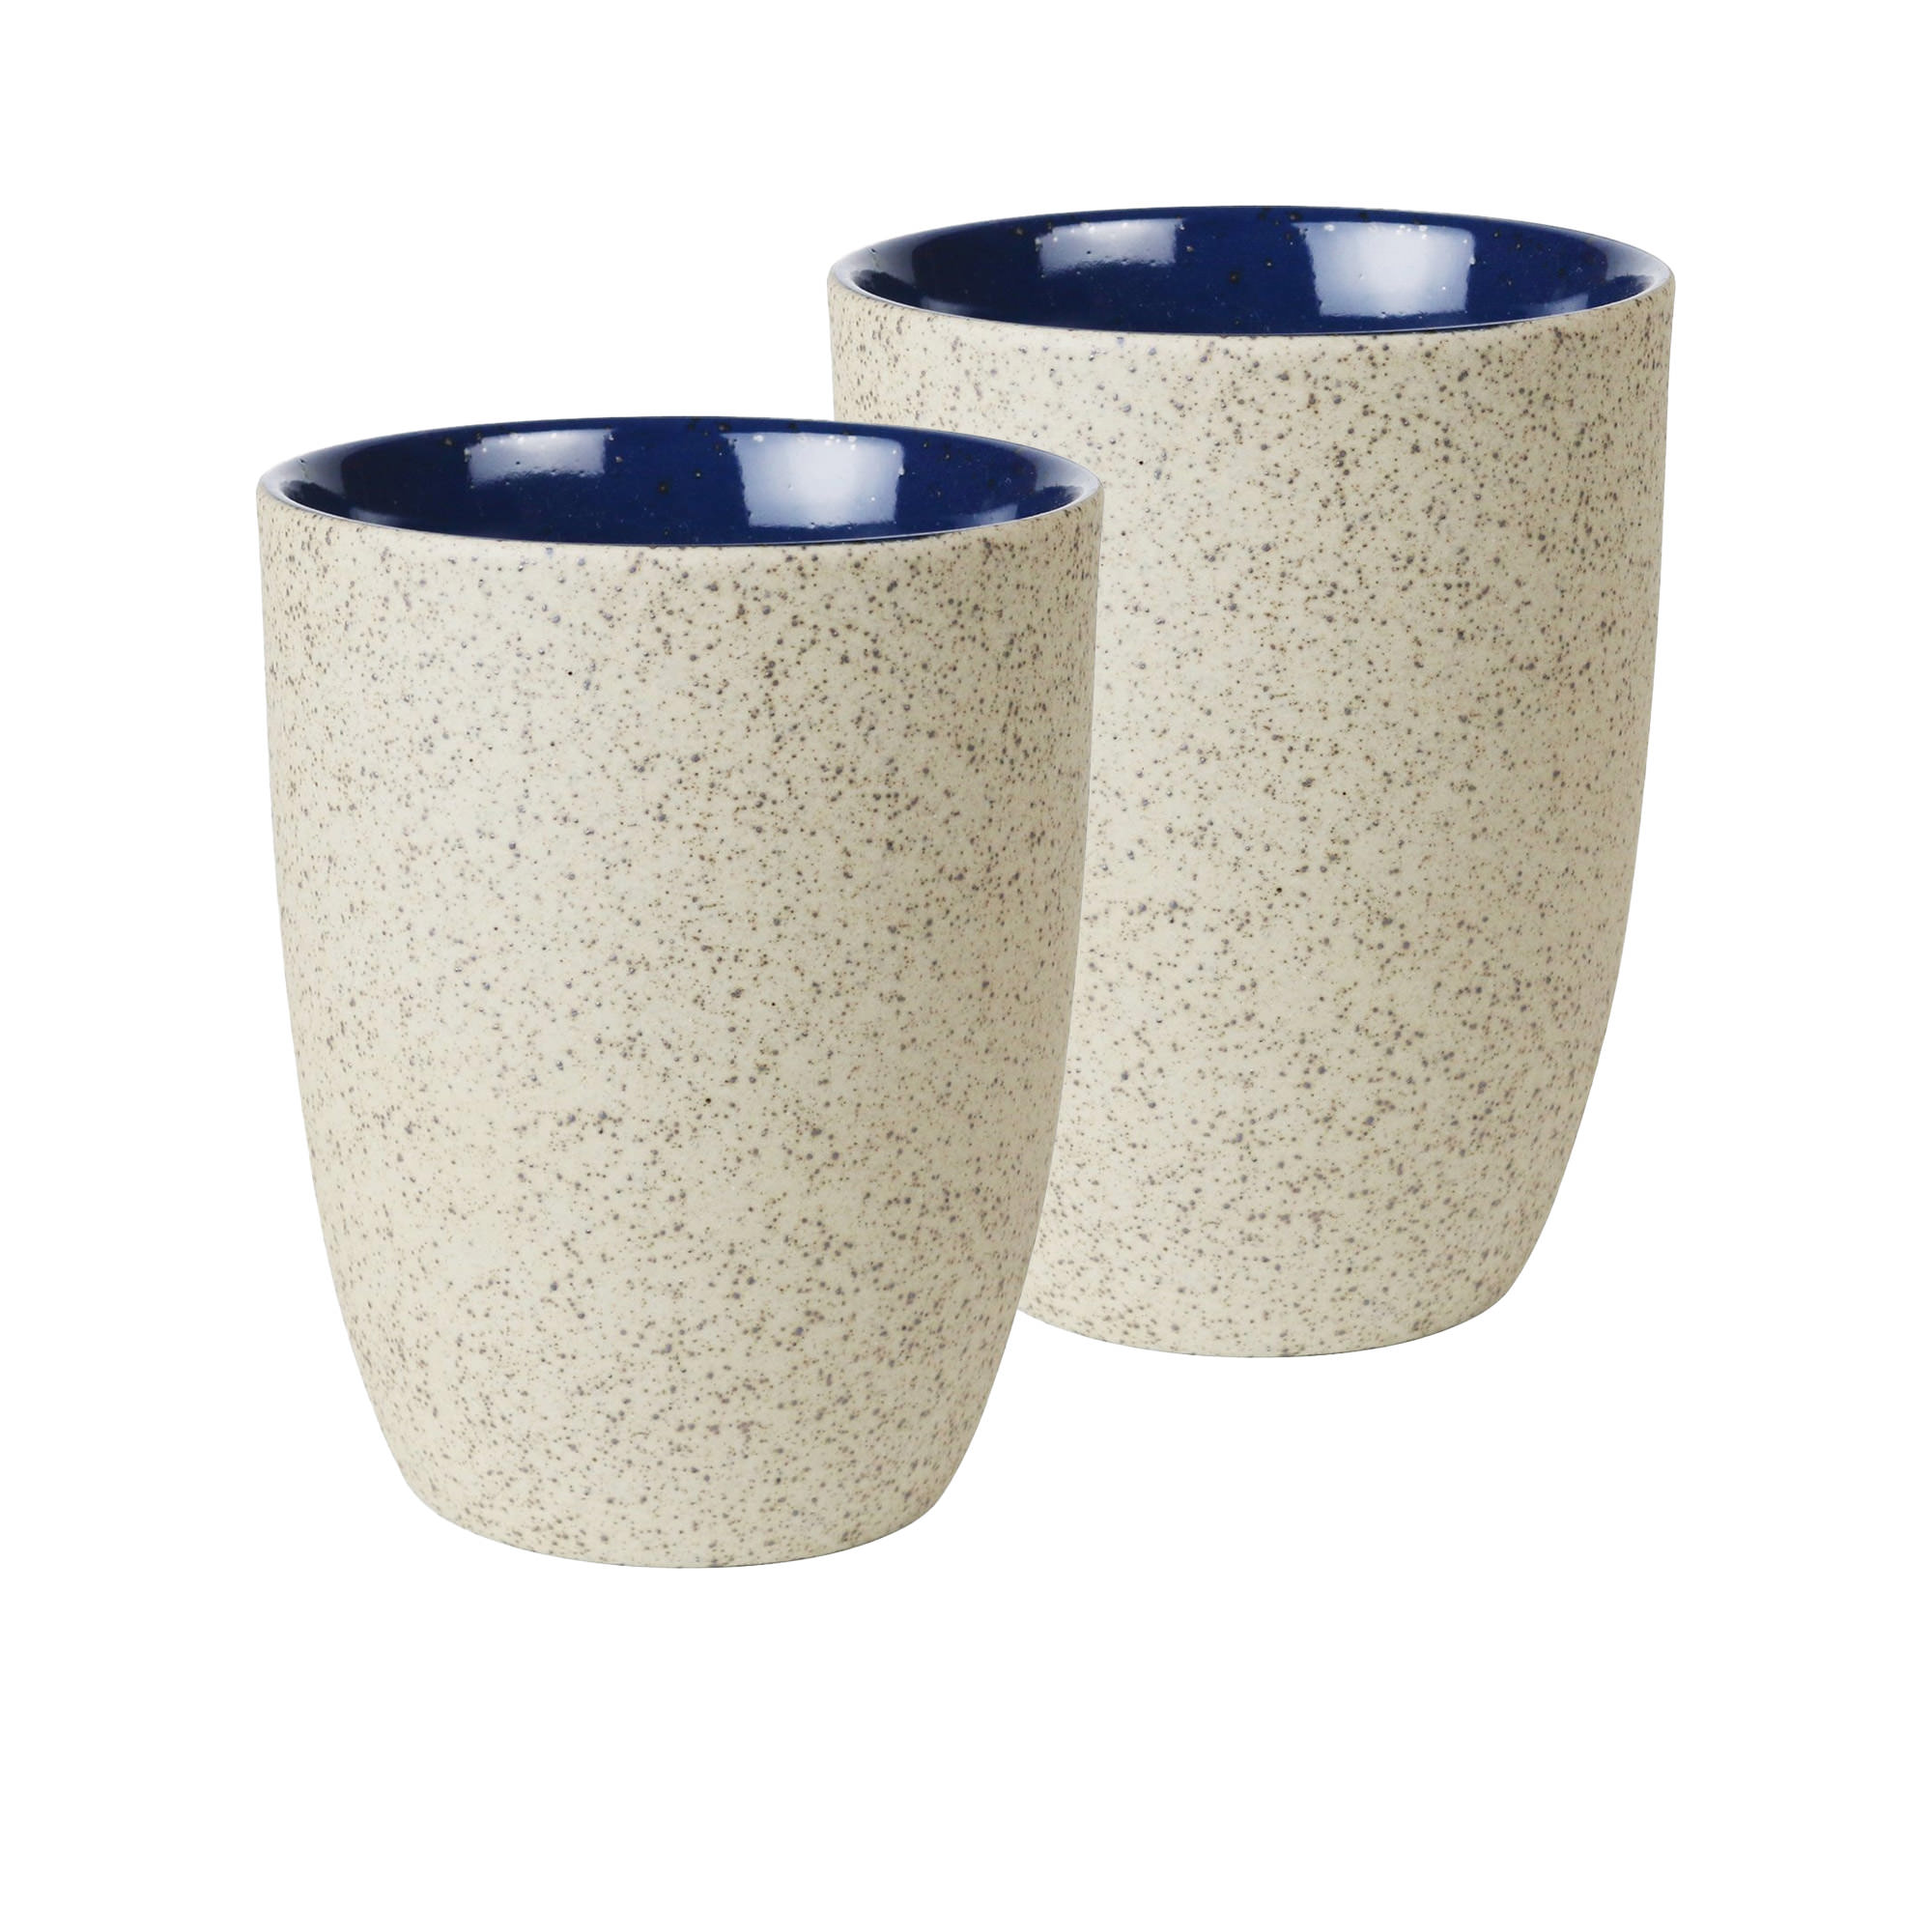 Robert Gordon Granite 2pc Latte Cup Set 330ml Blue